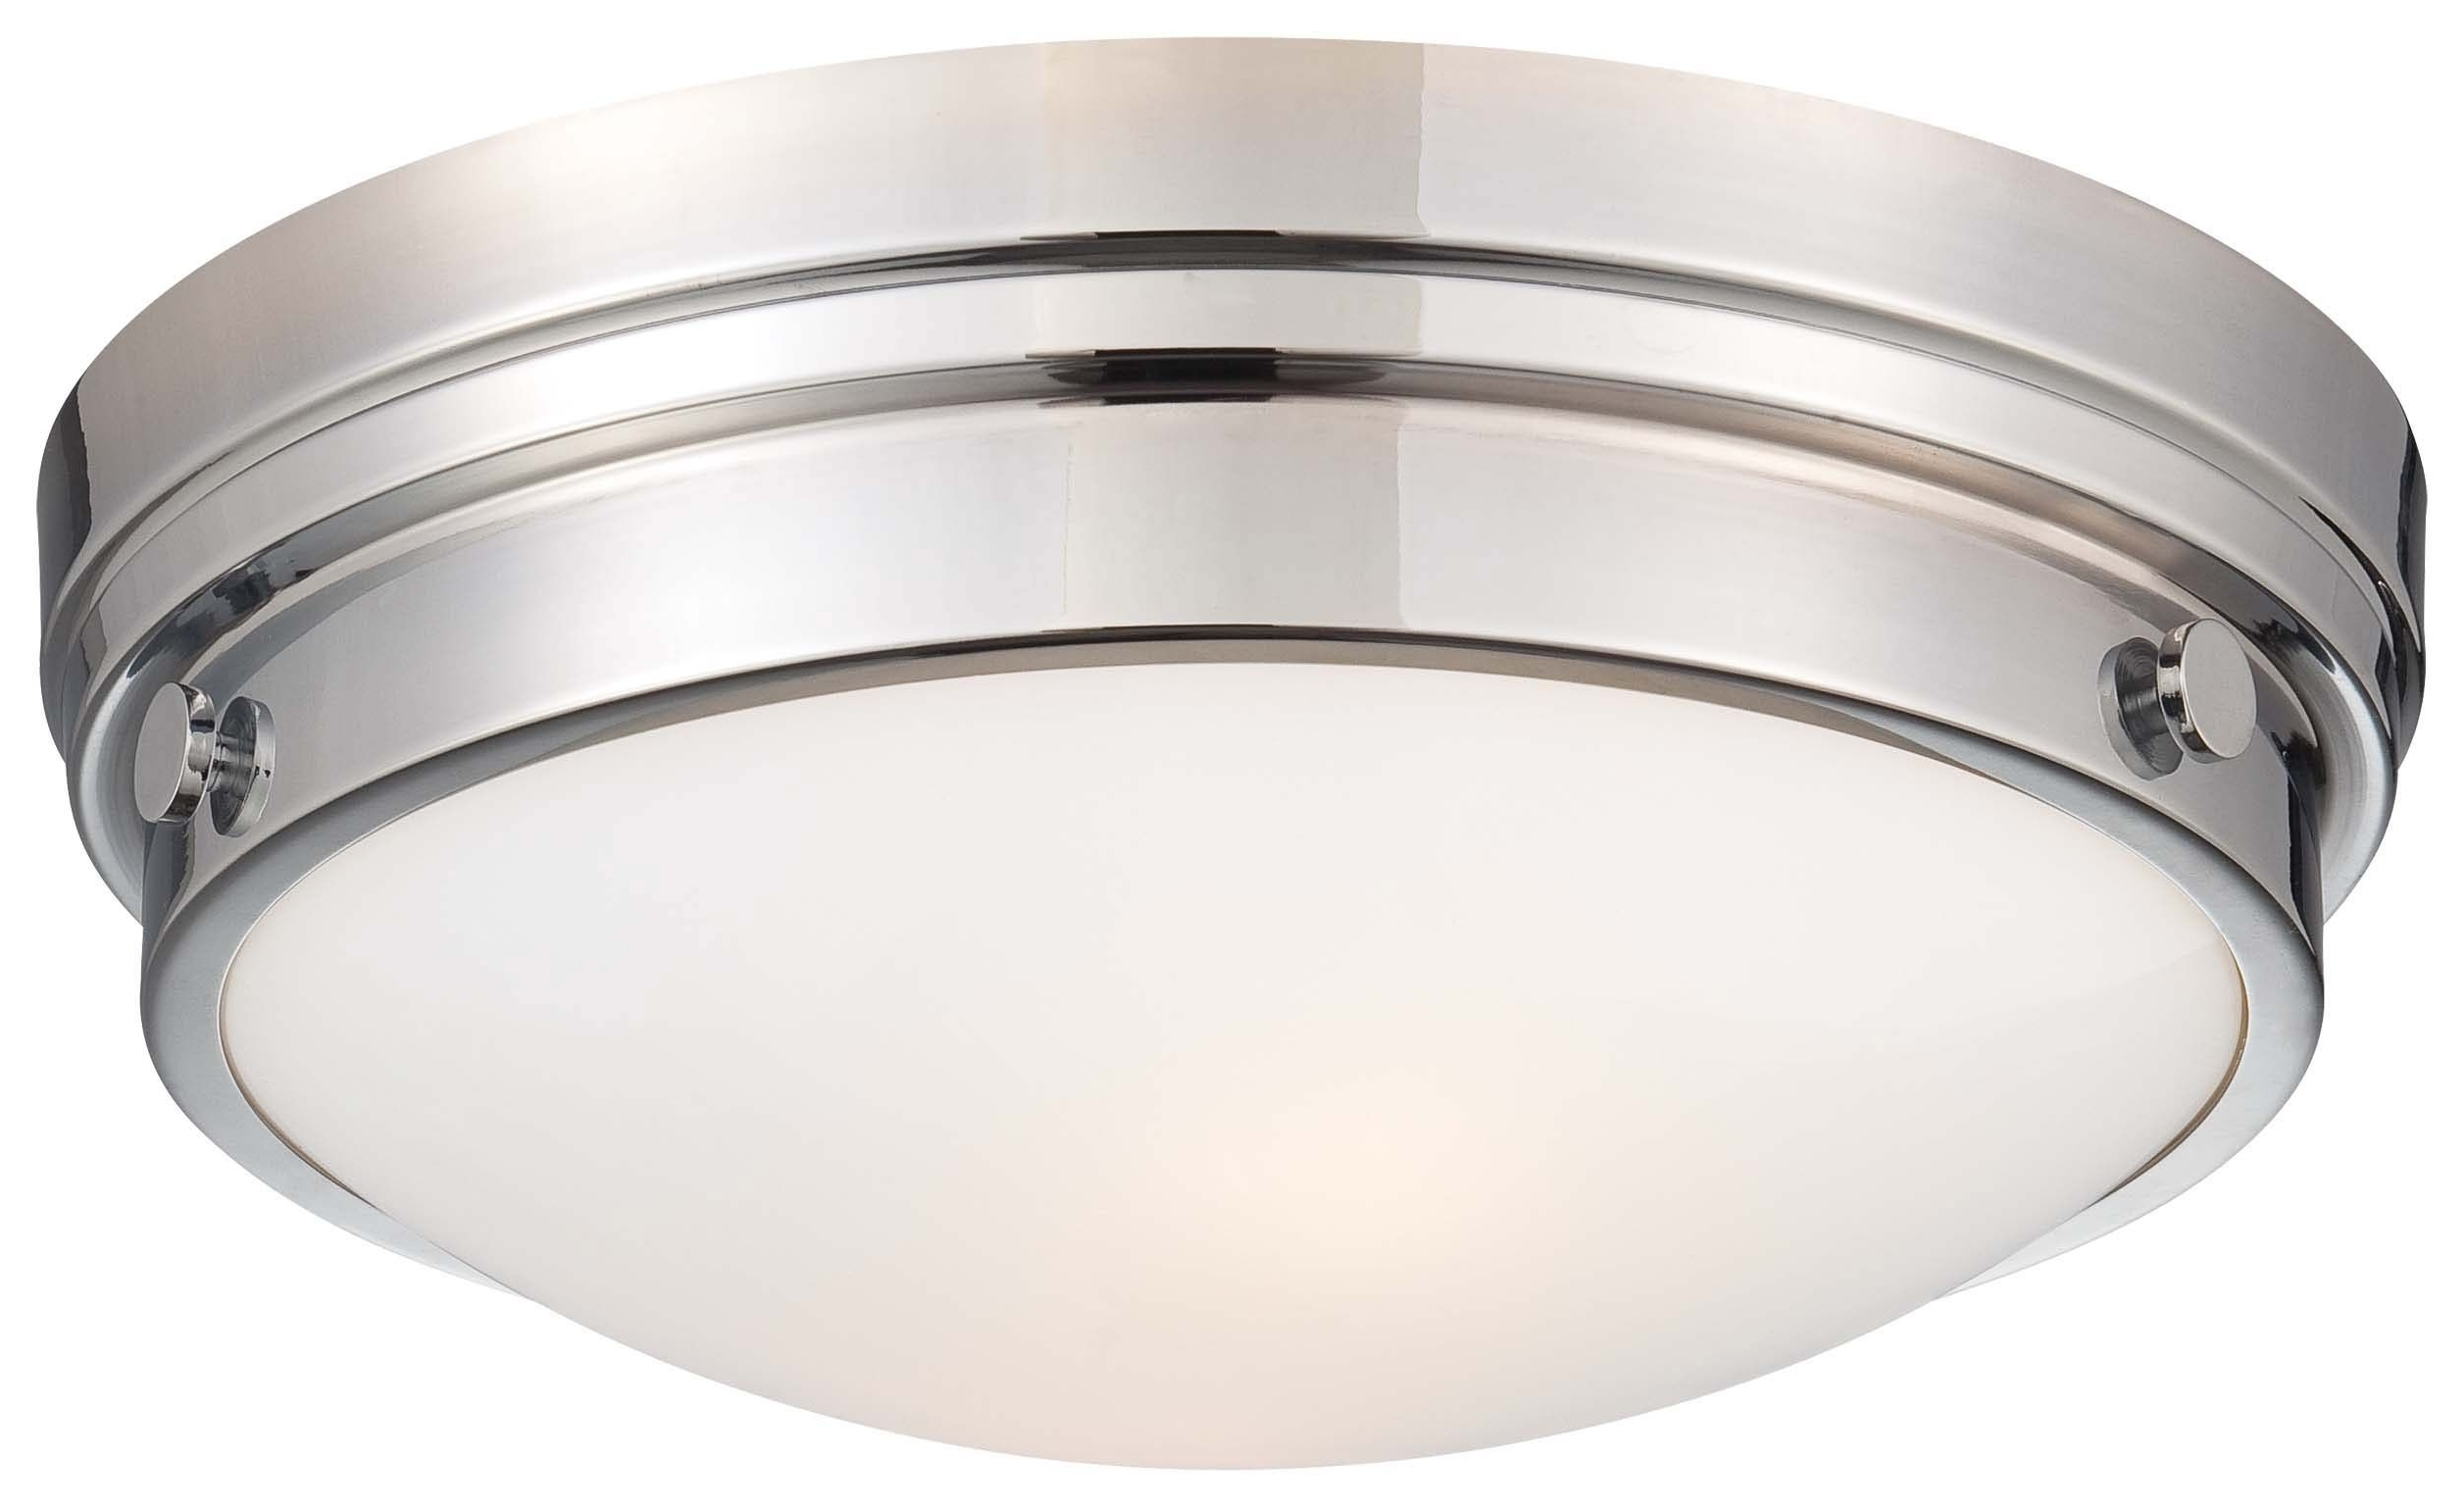 Light : Best Kitchen Light Fixtures Dining Room Lighting For In Best And Newest Commercial Outdoor Ceiling Lighting Fixtures (View 8 of 20)